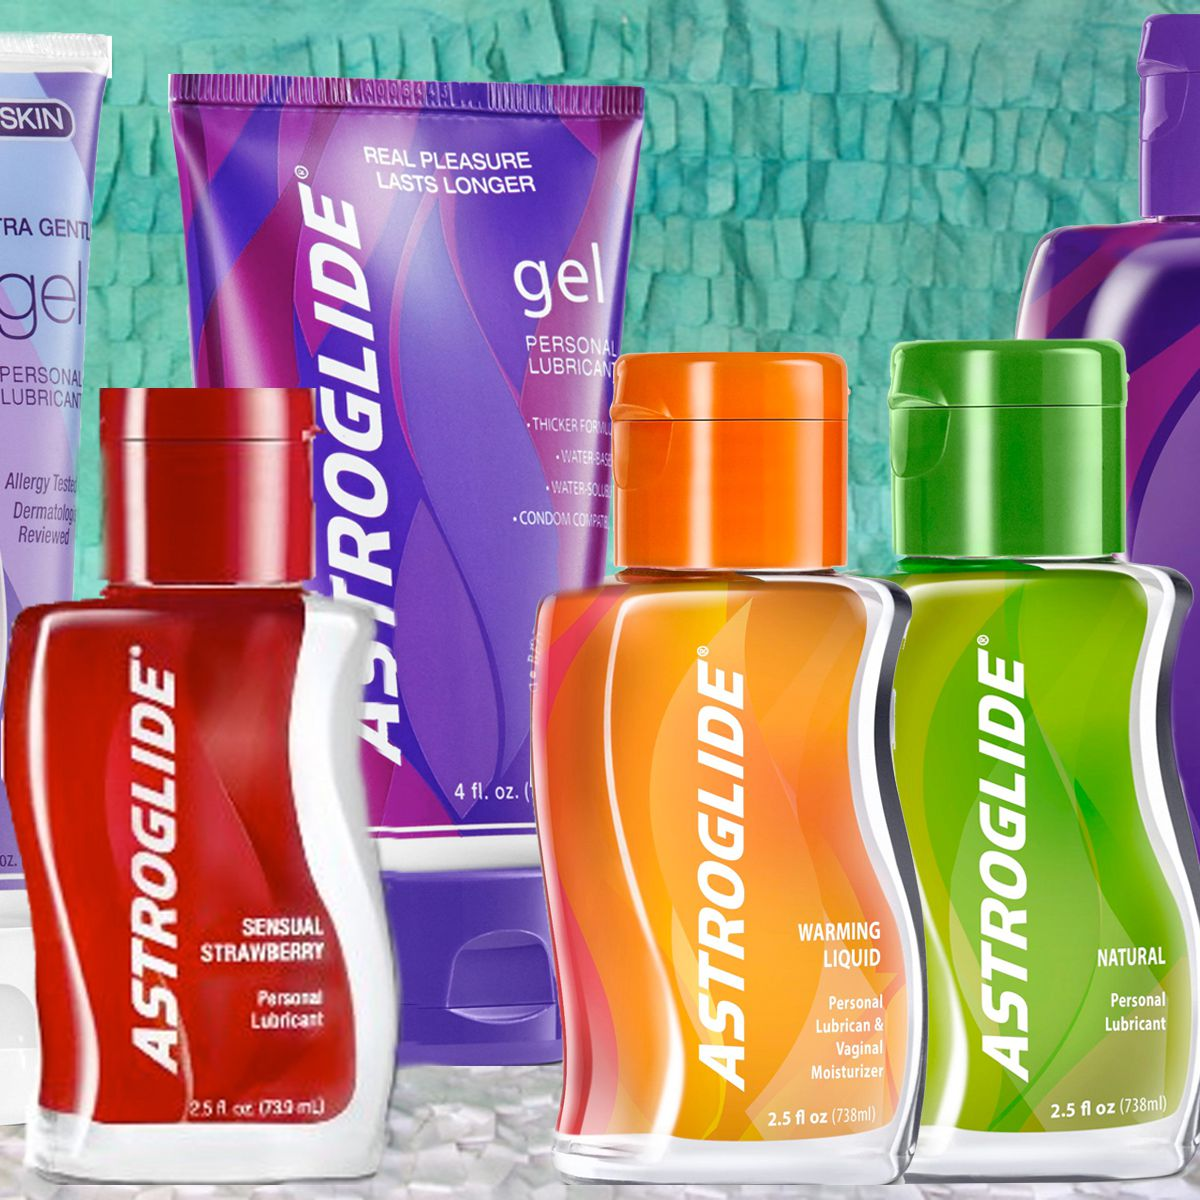 Astroglide Water-Based Personal Lubricants